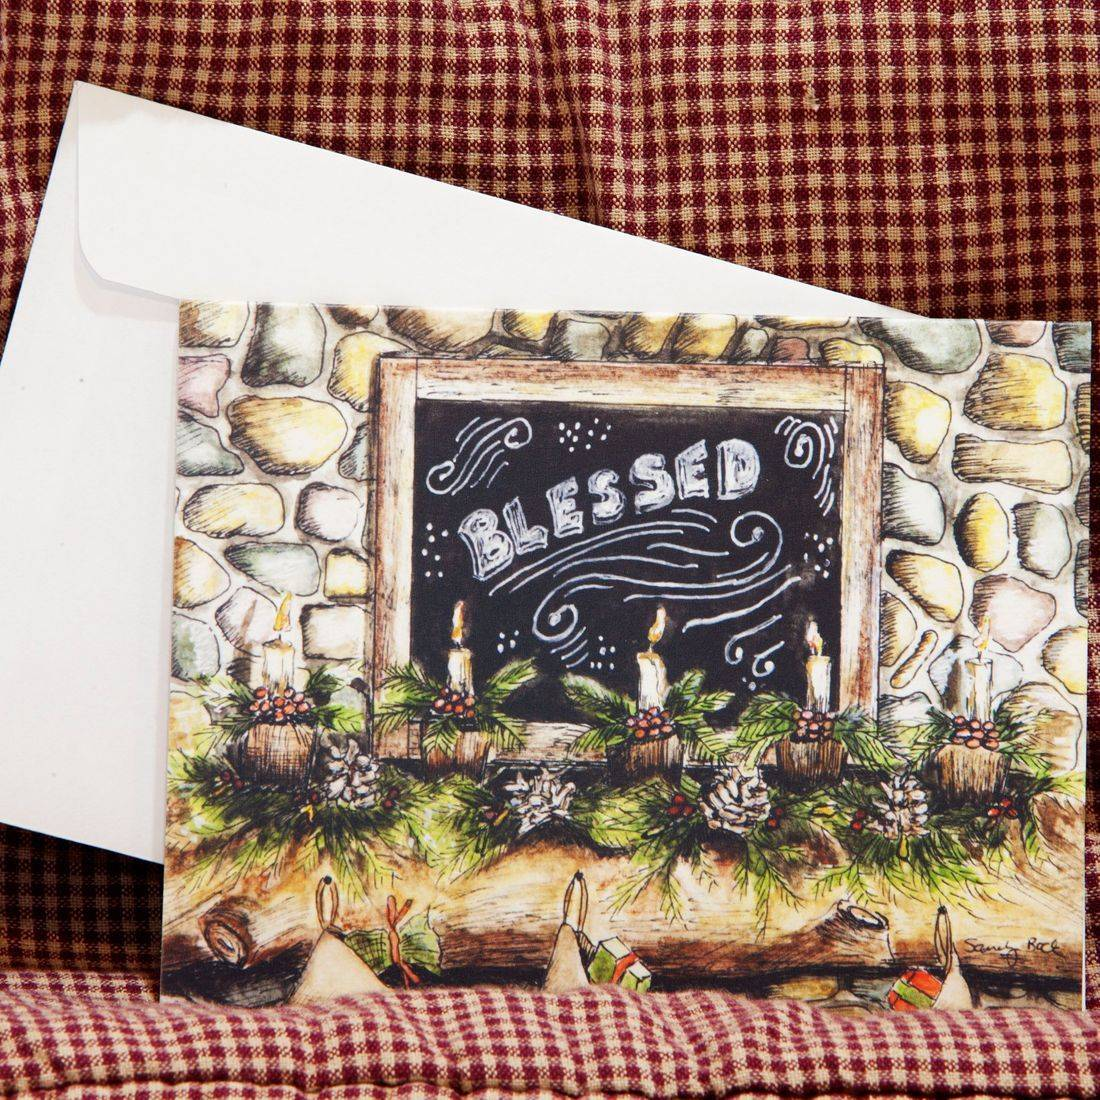 Christmas cards, holiday crads, country christmas, rustic country, chalk art, christian